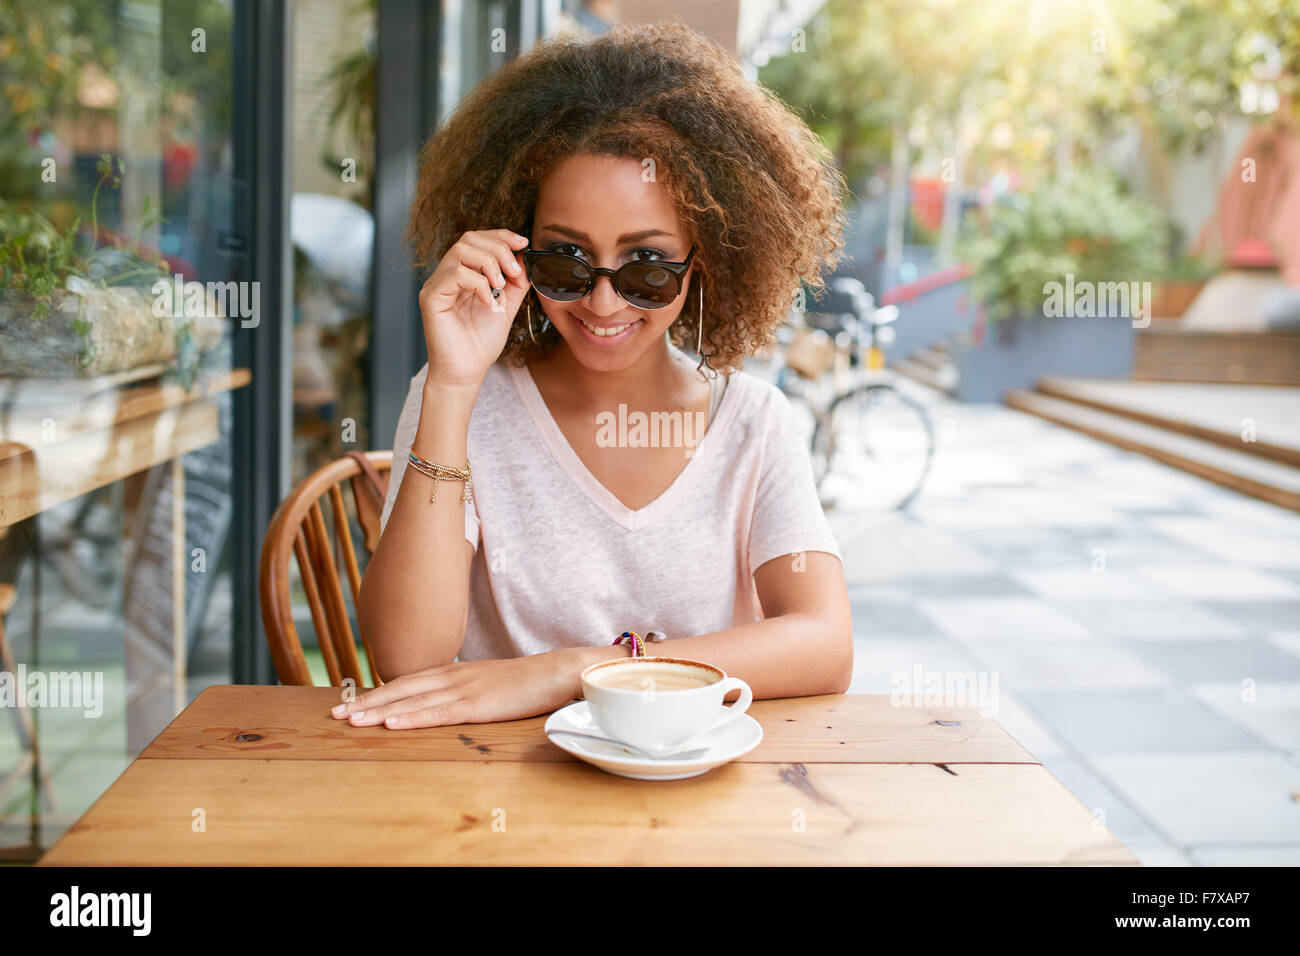 Portrait of pretty young girl at outdoor cafe.  African young woman wearing sunglasses looking at camera. - Stock Image